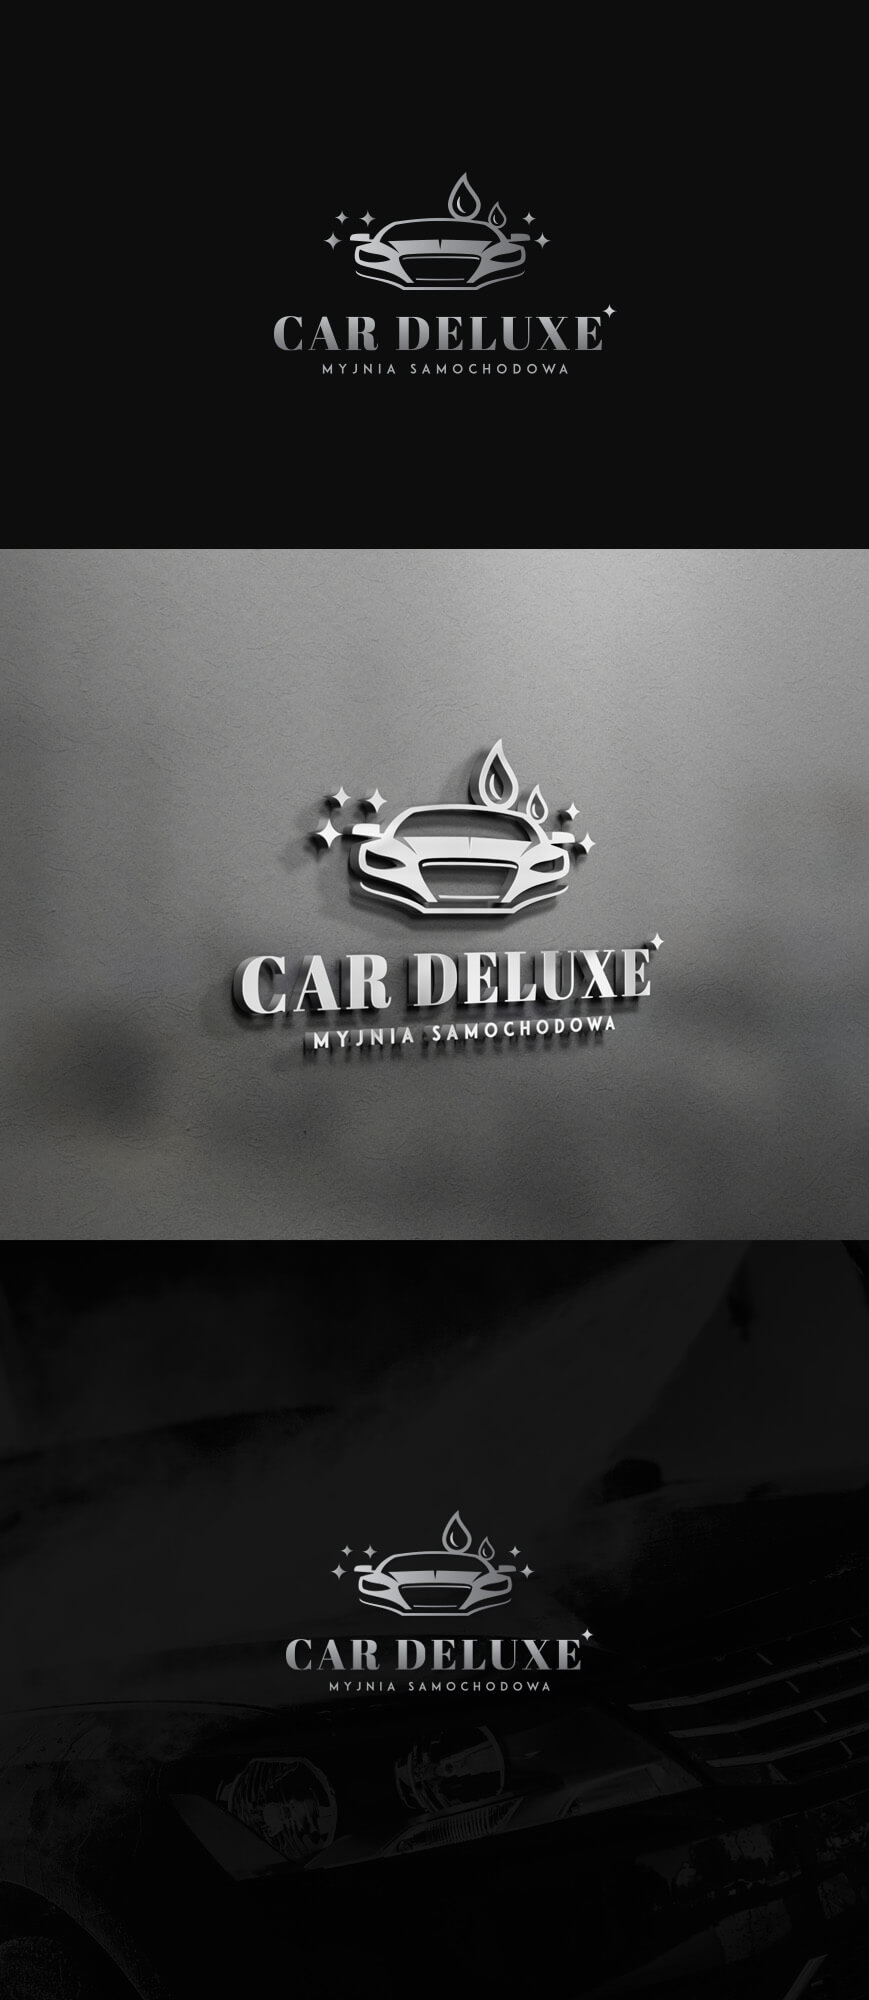 11cardeluxe